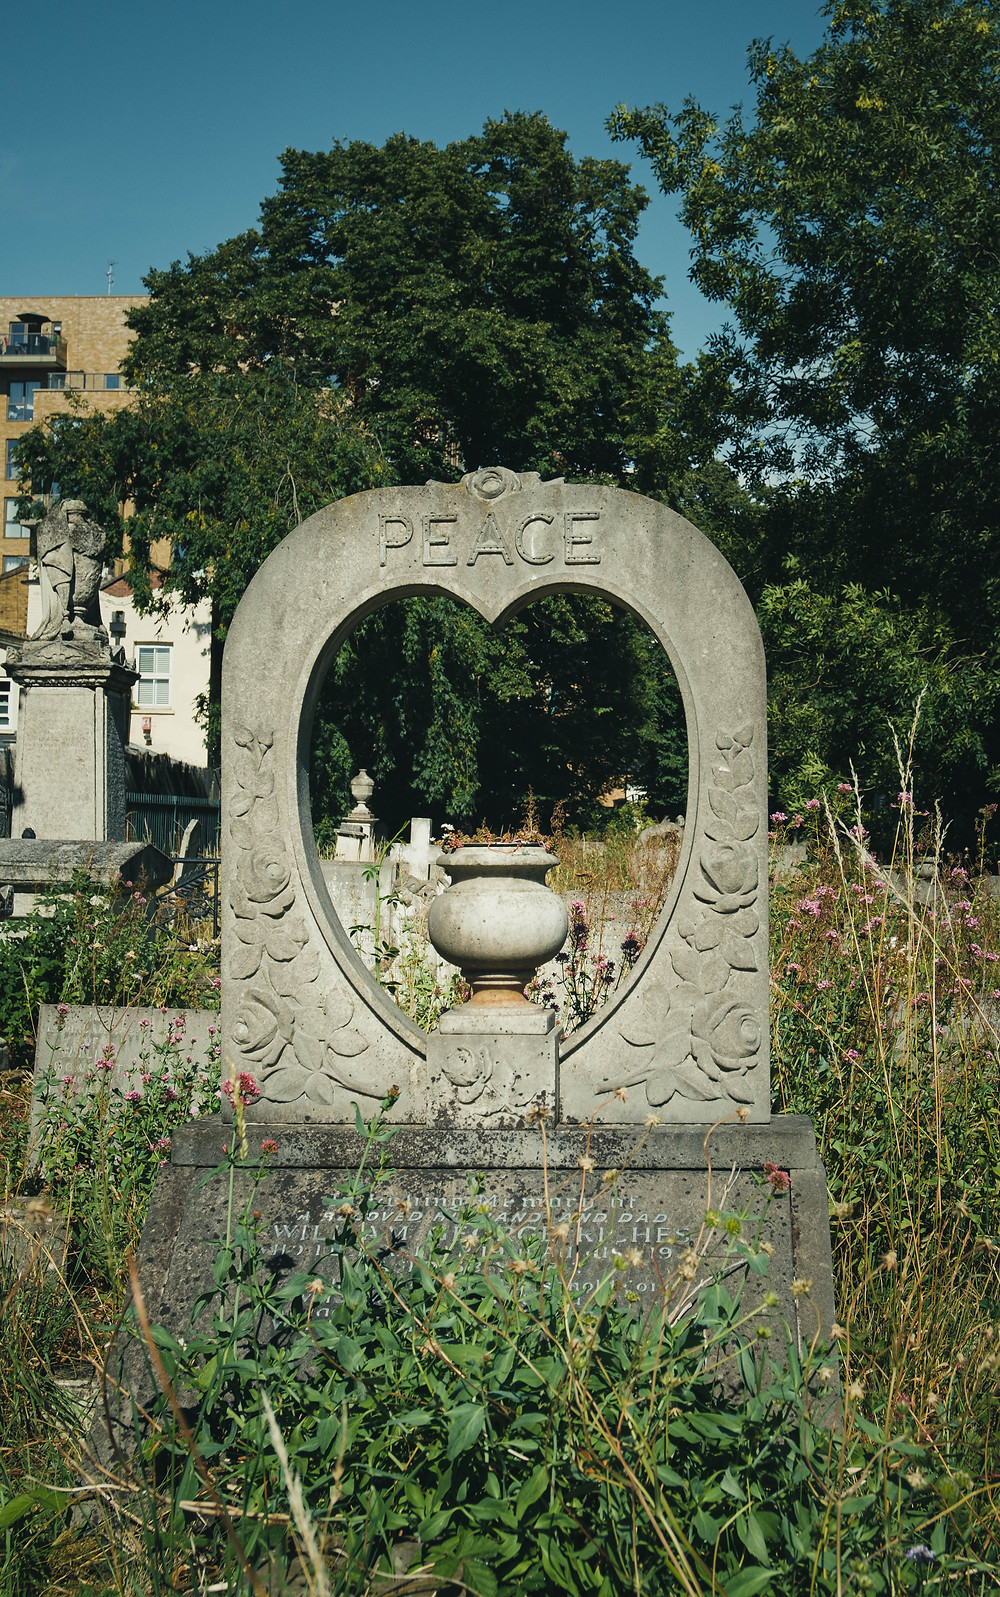 Photograph of a tomb stone in Tower Hamlet Cemetery in East London.